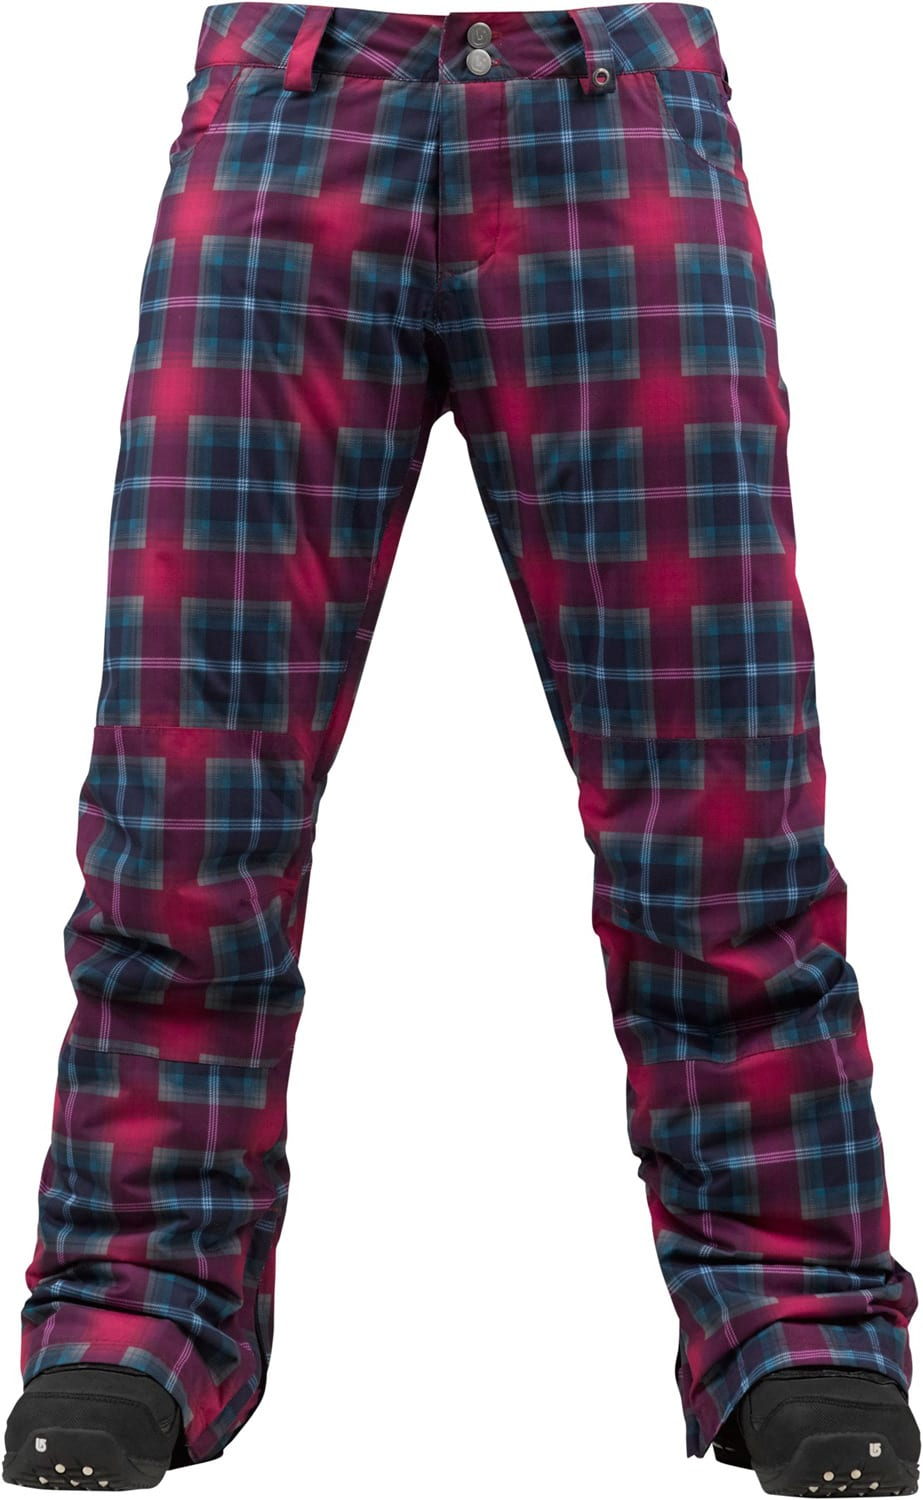 On Sale Burton Society Snowboard Pants - Womens up to 55% off